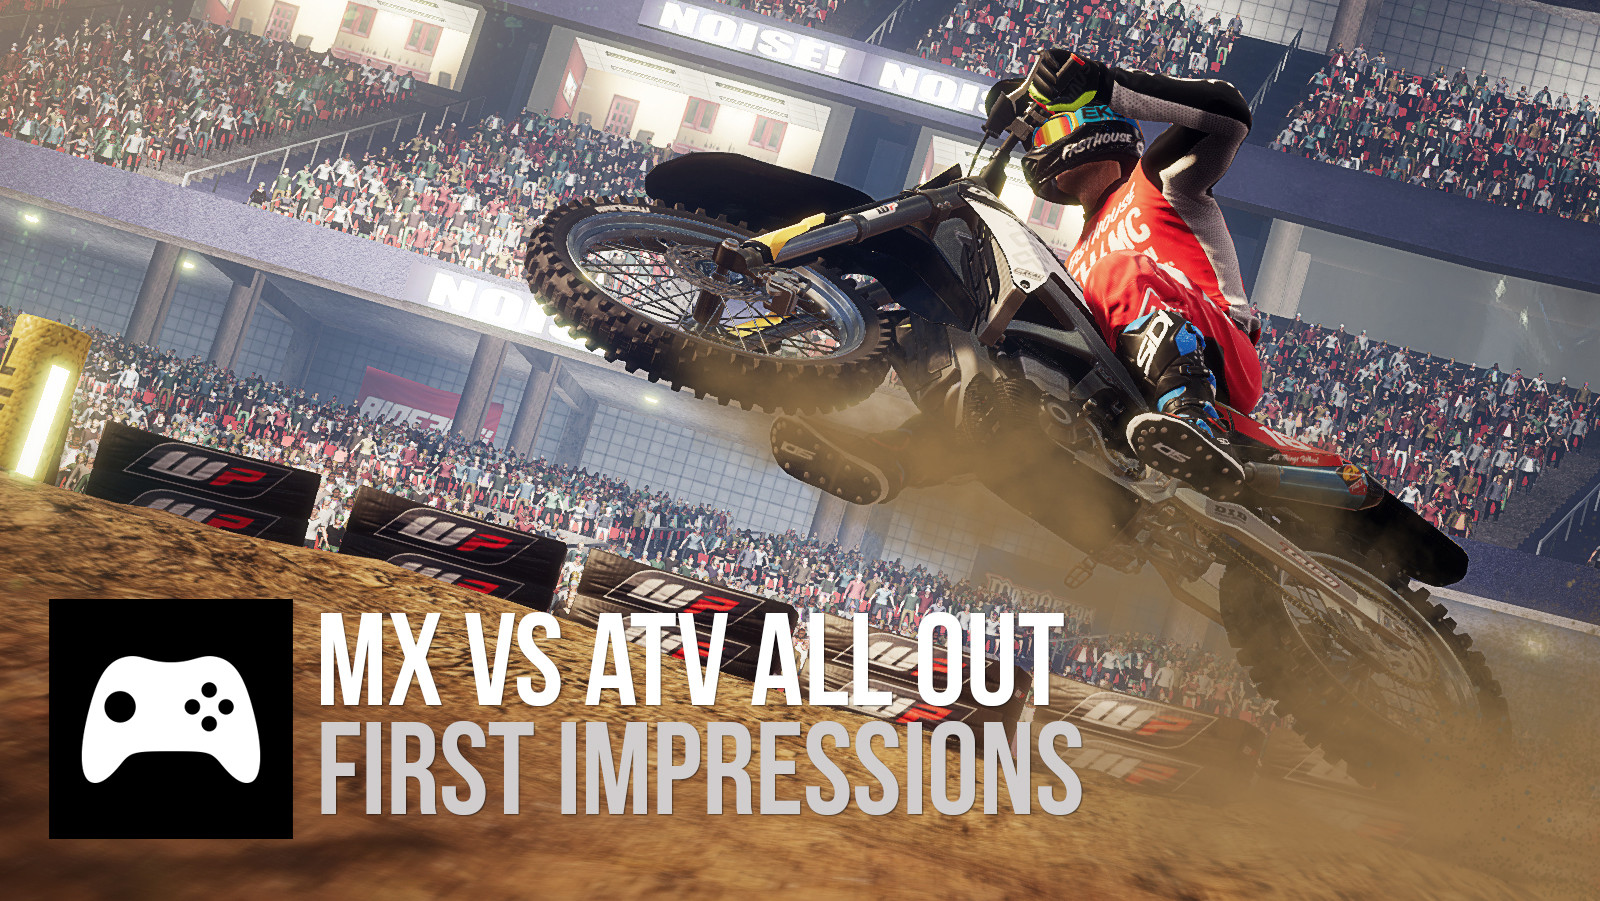 First Impressions: MX vs ATV All Out